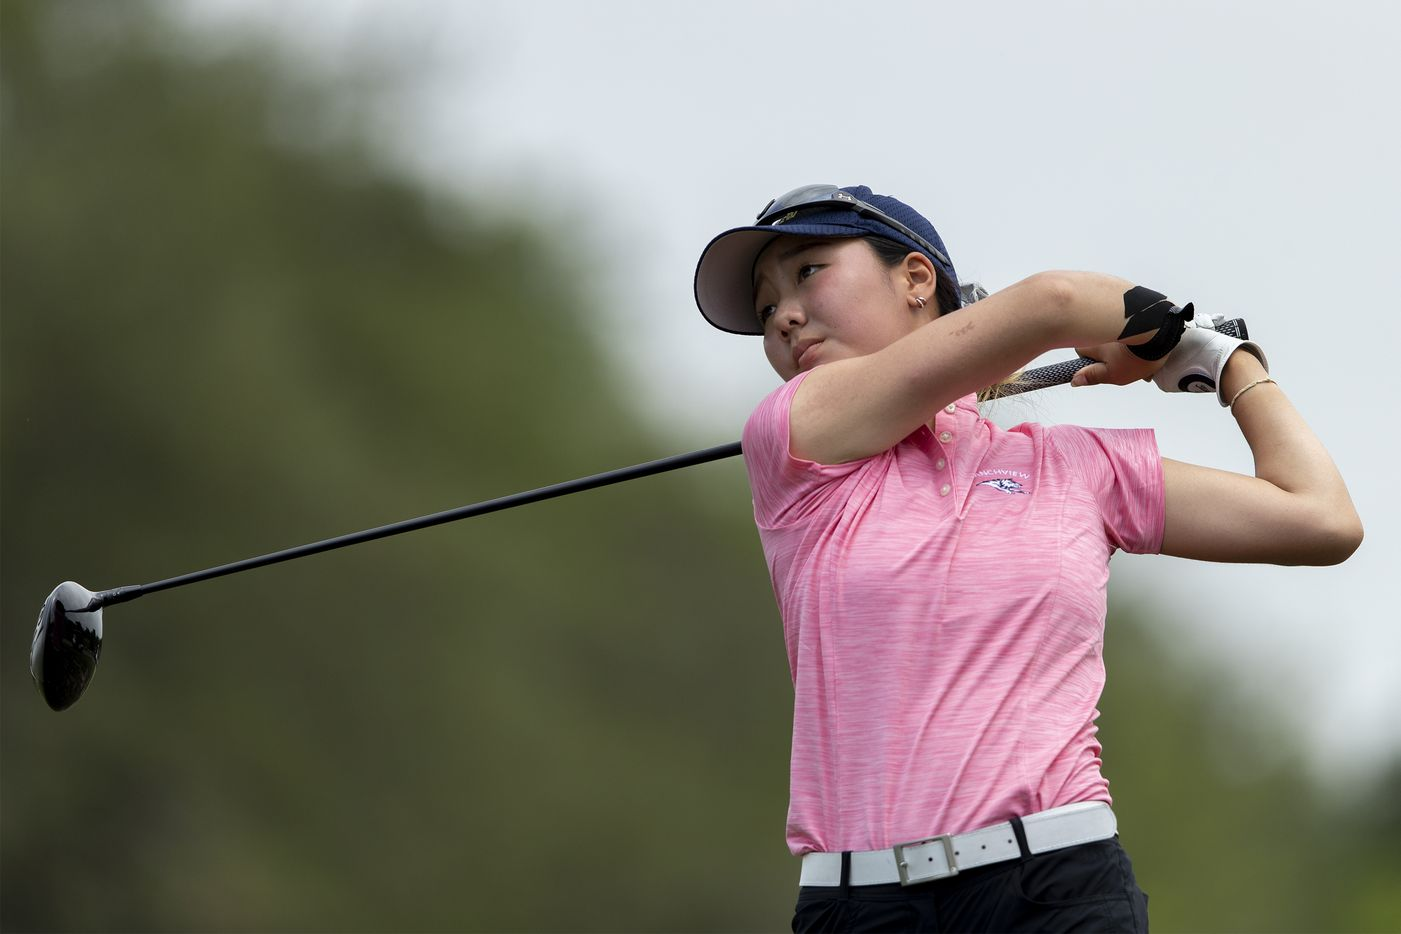 Carrollton Ranchview's Bohyun Park hits from the 15th tee box during the final day of the UIL Class 4A girls golf tournament in Kyle, Tuesday, May 11, 2021. (Stephen Spillman/Special Contributor)